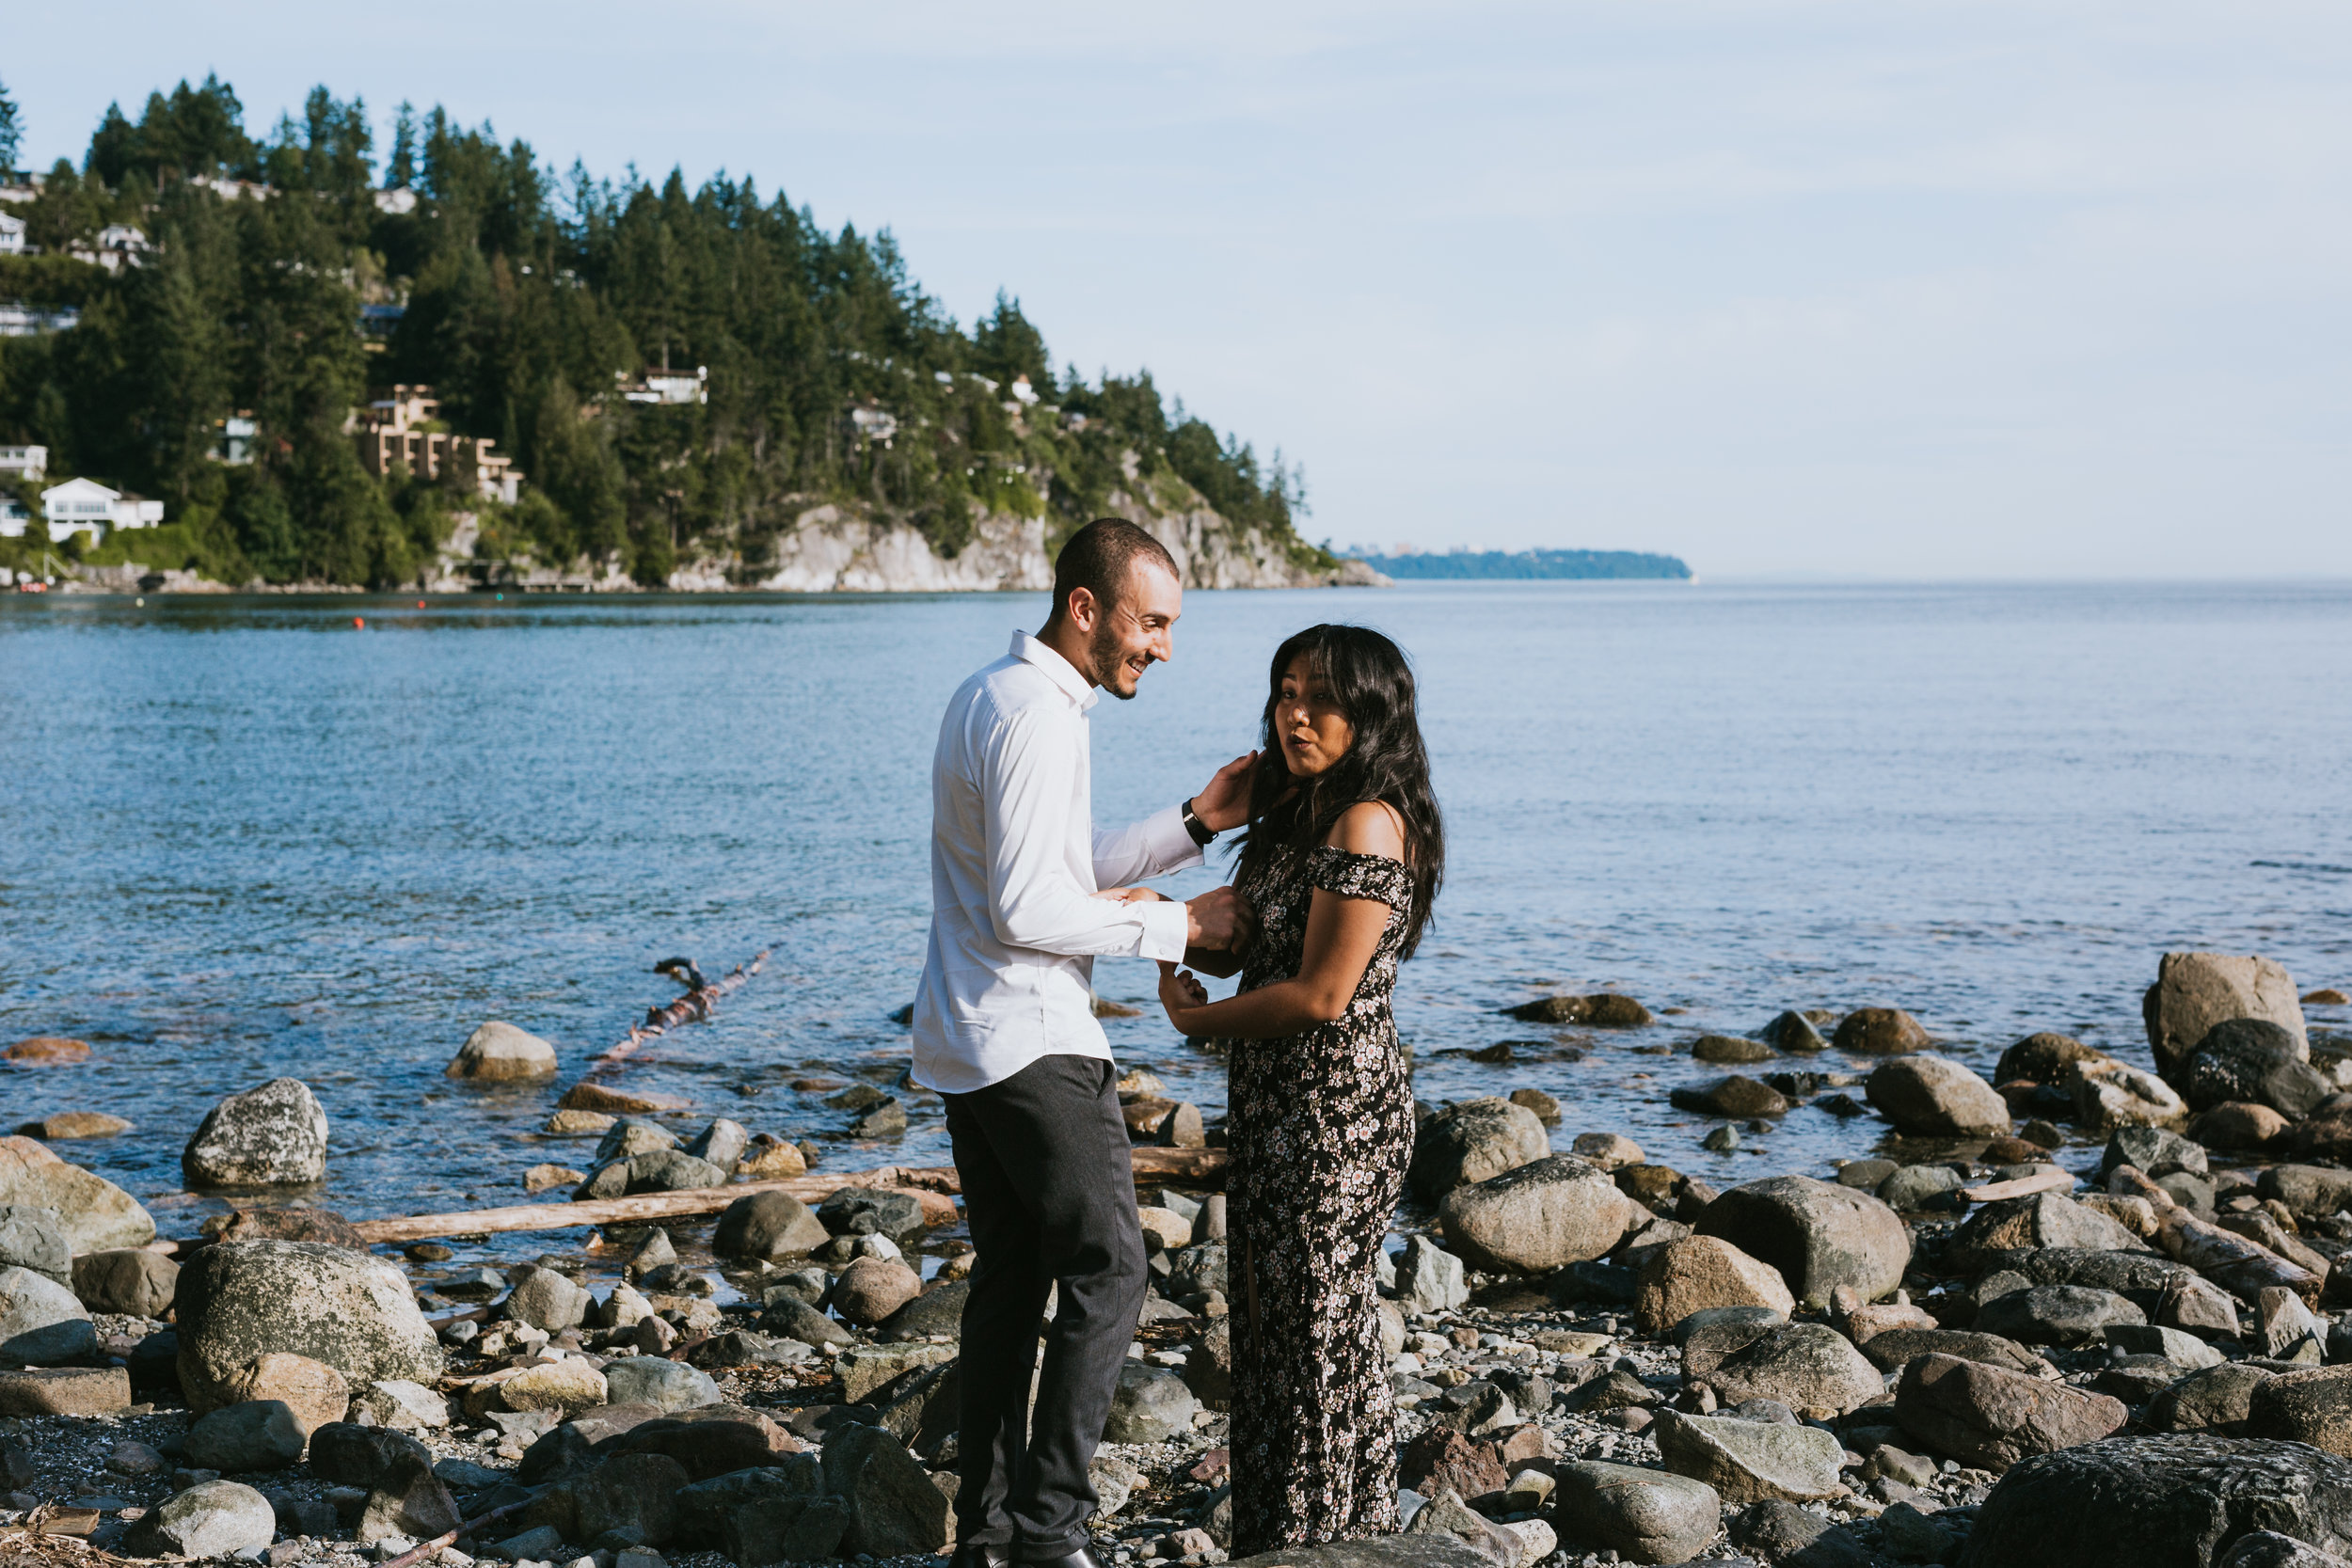 oliver-rabanes-vancouver-surrey-whytecliff-park-proposal-engagement-photography-10.JPG